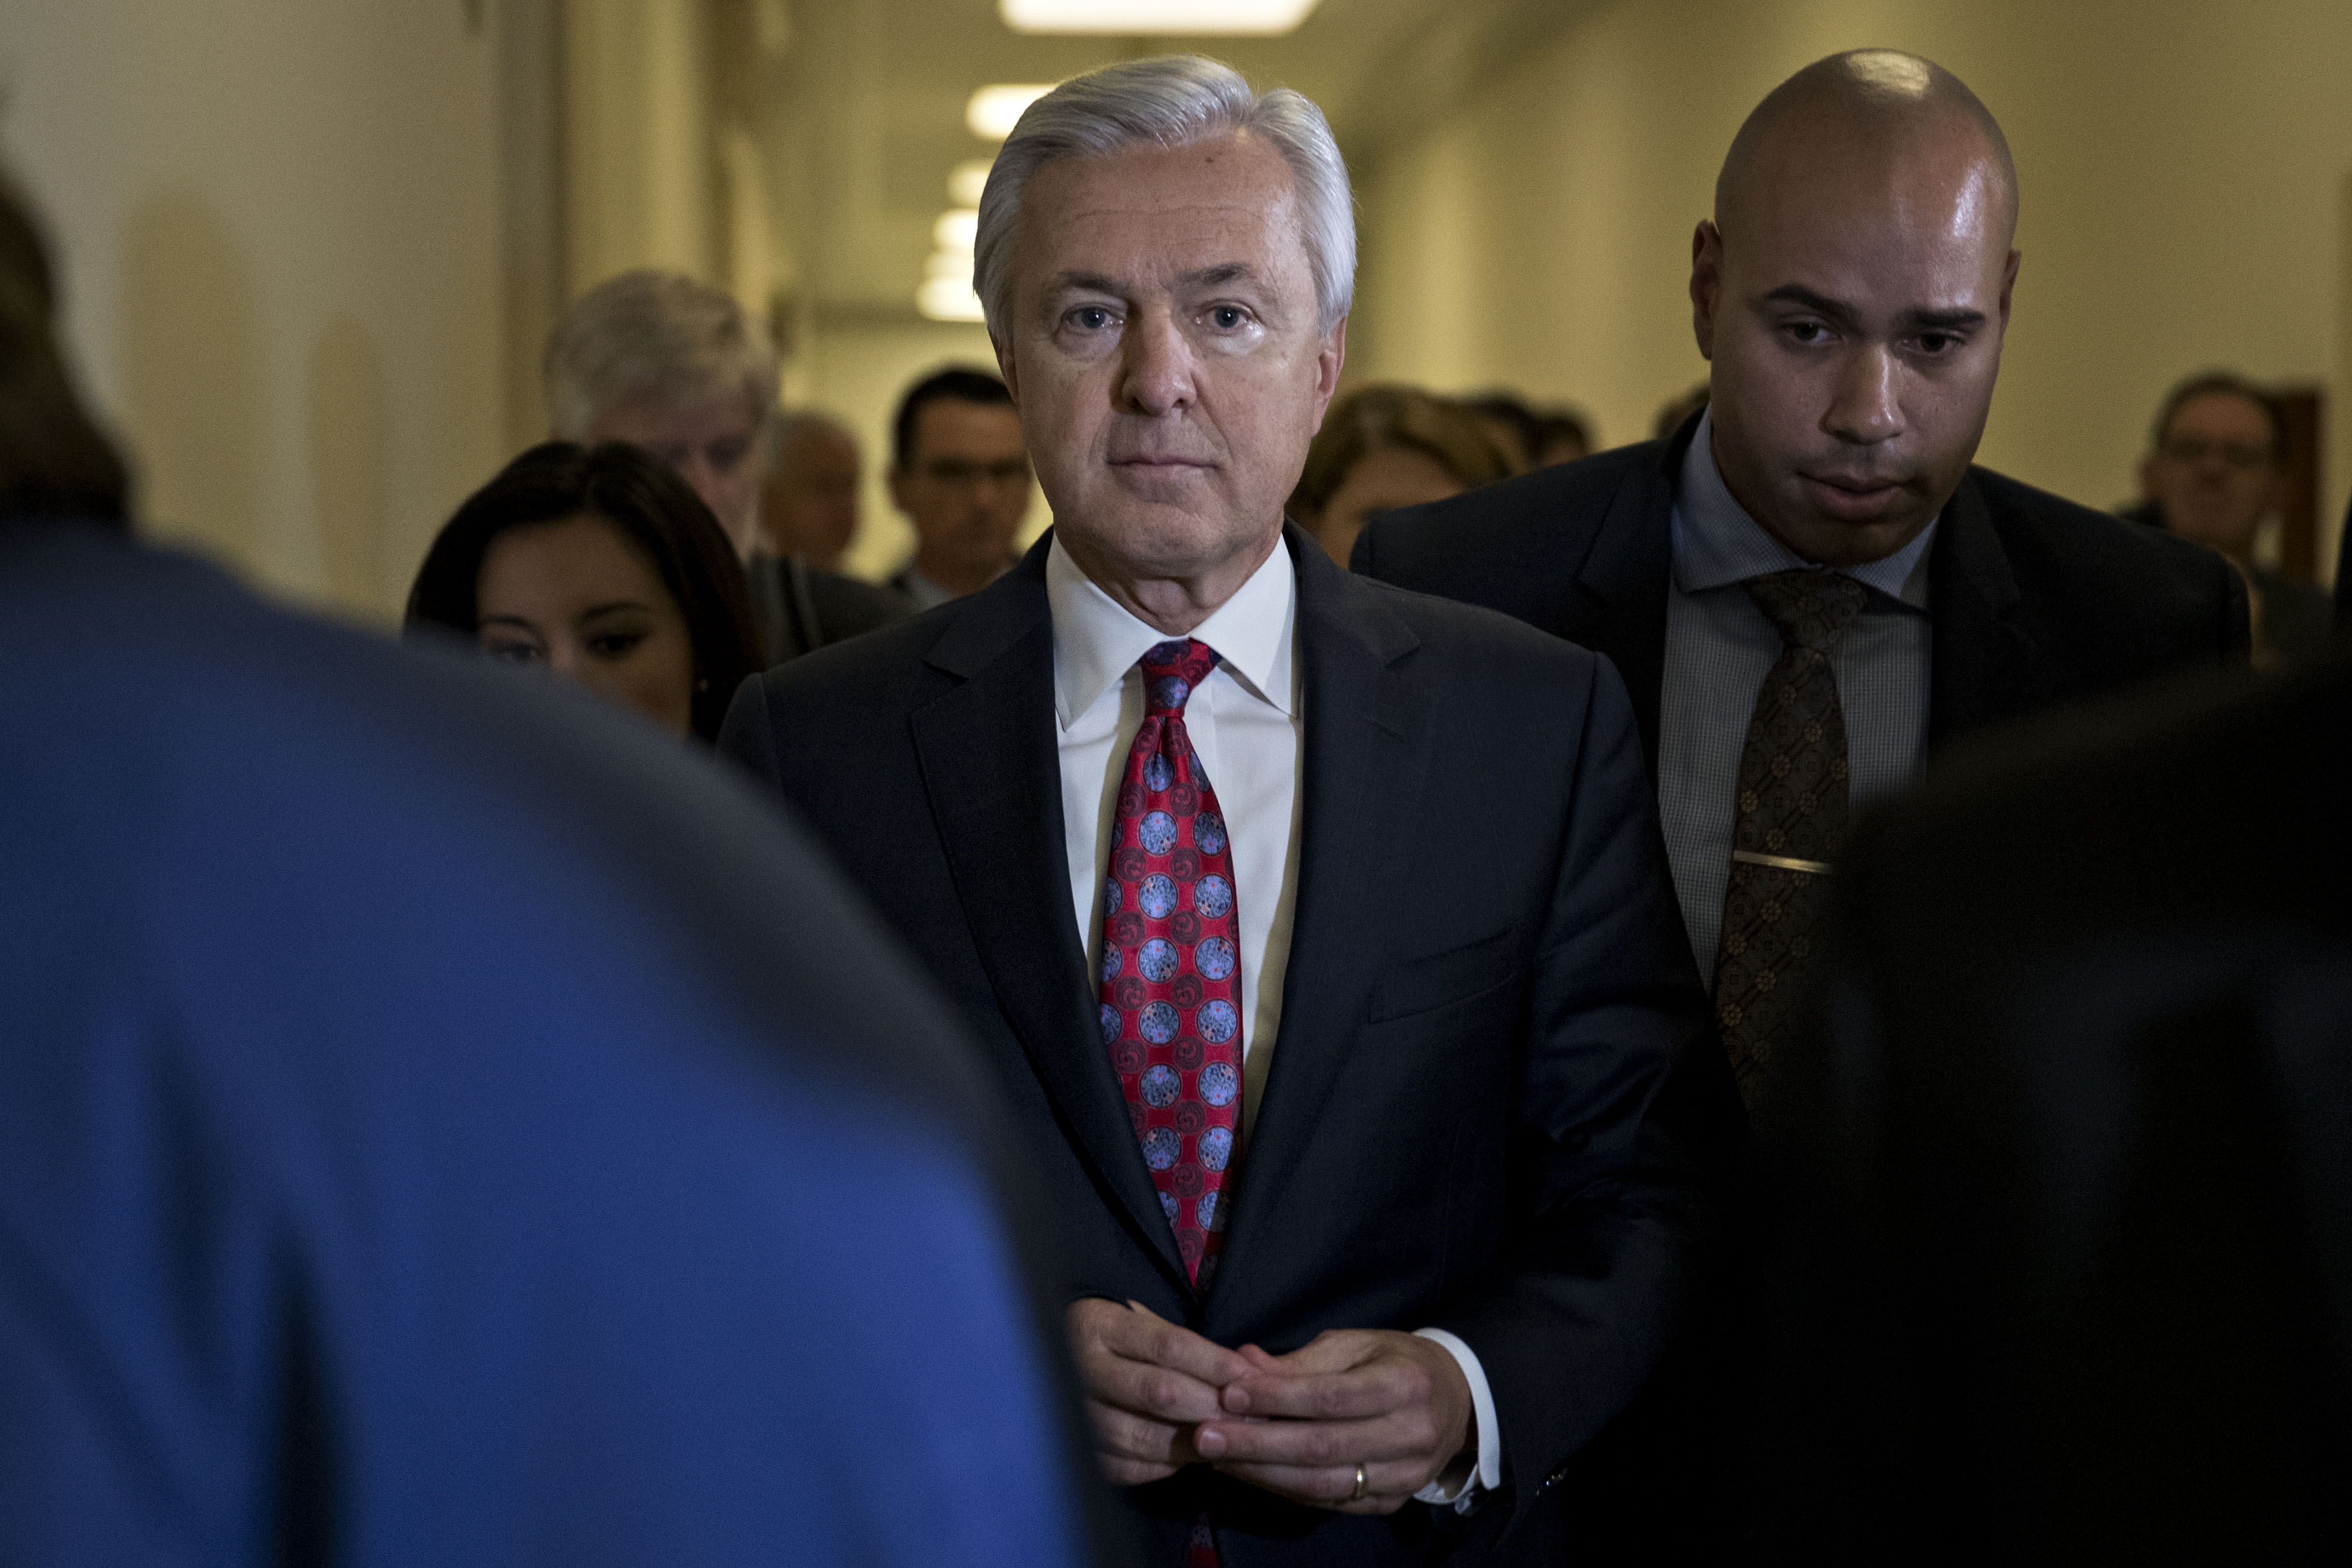 Wells Fargo CEO John Stumpf Testifies To The House Financial Services Committee